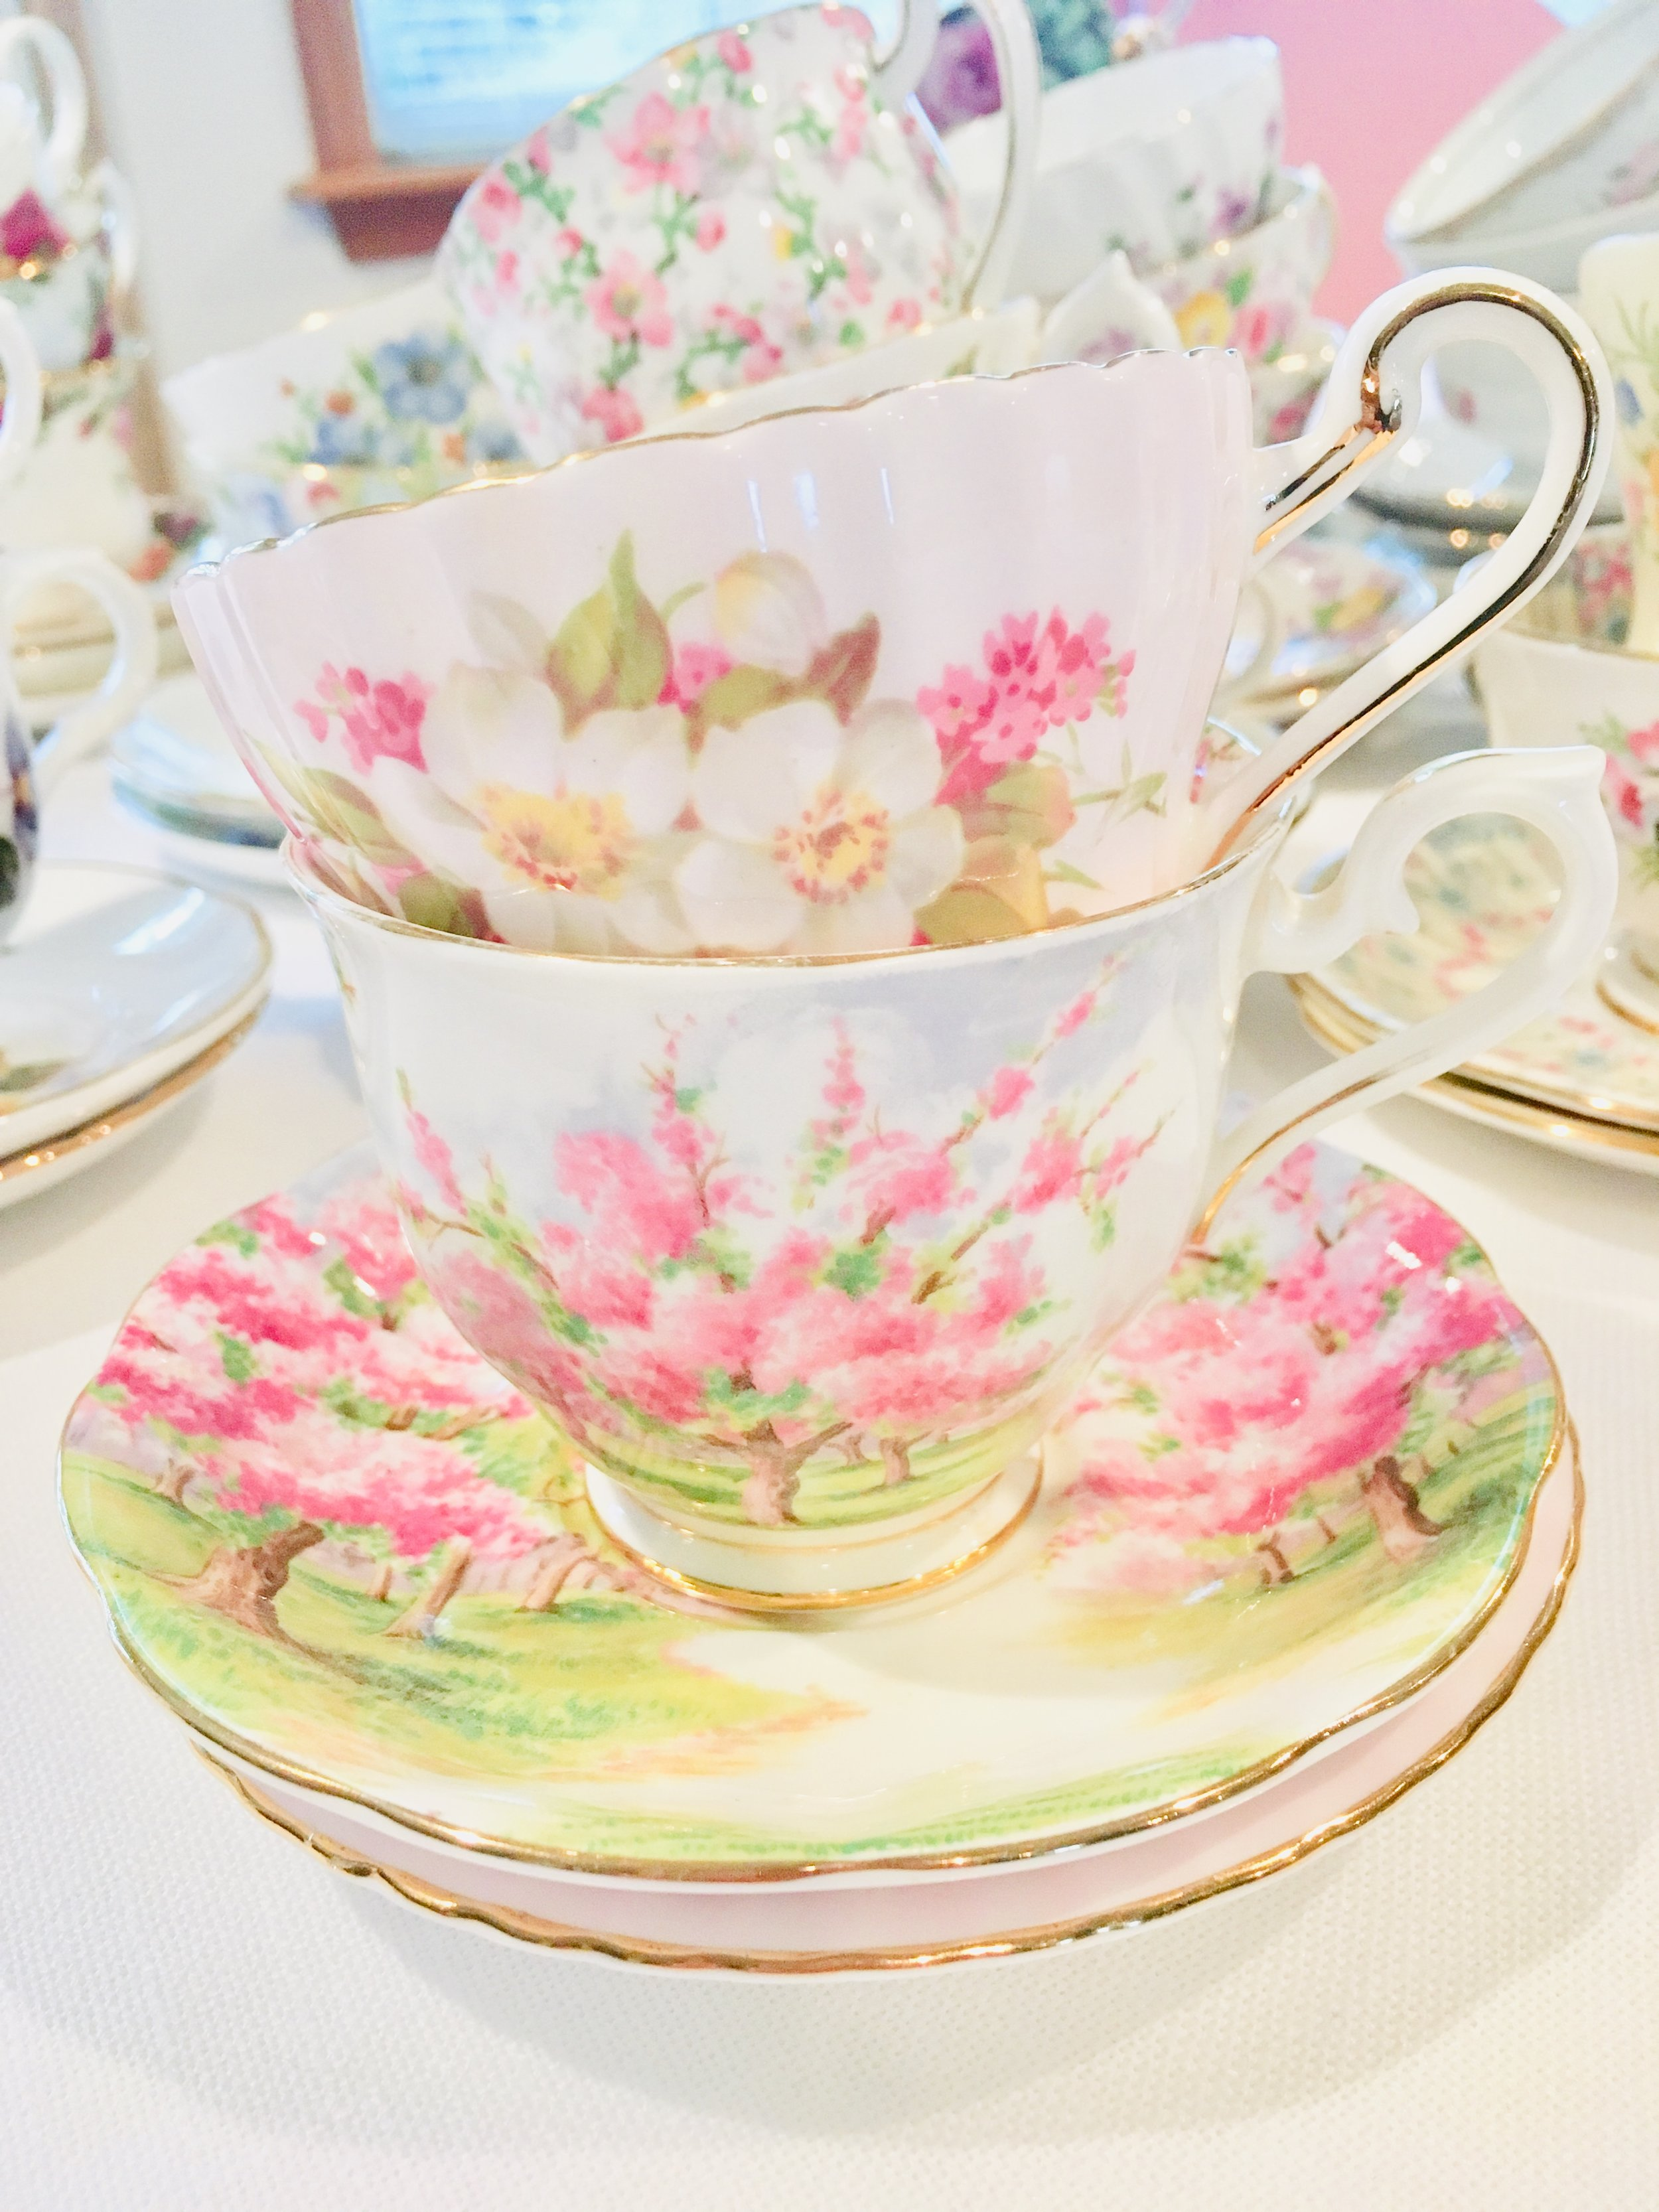 Blossom time - Spring is our favorite time for tea parties. So many opportunities for celebration with Easter, Mother's Day, and bridal showers, of course!